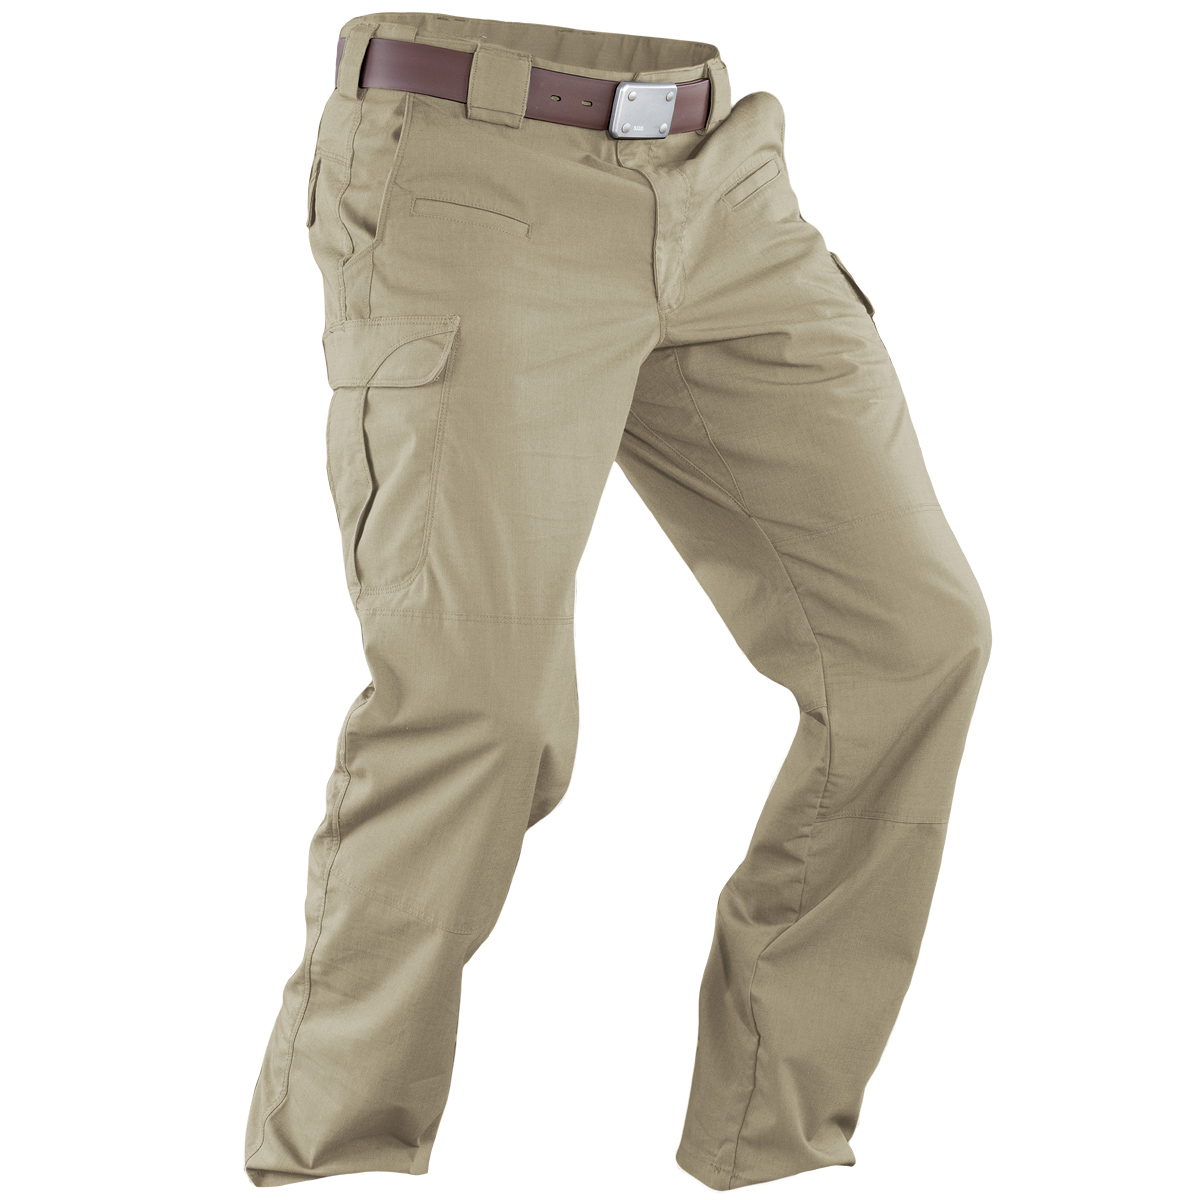 Jun 14,  · Difference Between Trousers and Pants-British. Trousers is an outer garment covering the body from the waist to the ankles, with a separate part for each leg. Pants is a term for underwear or knickers. American. Trouser is a tailored garment with a waistband, buttoned loopholes and a fly front.